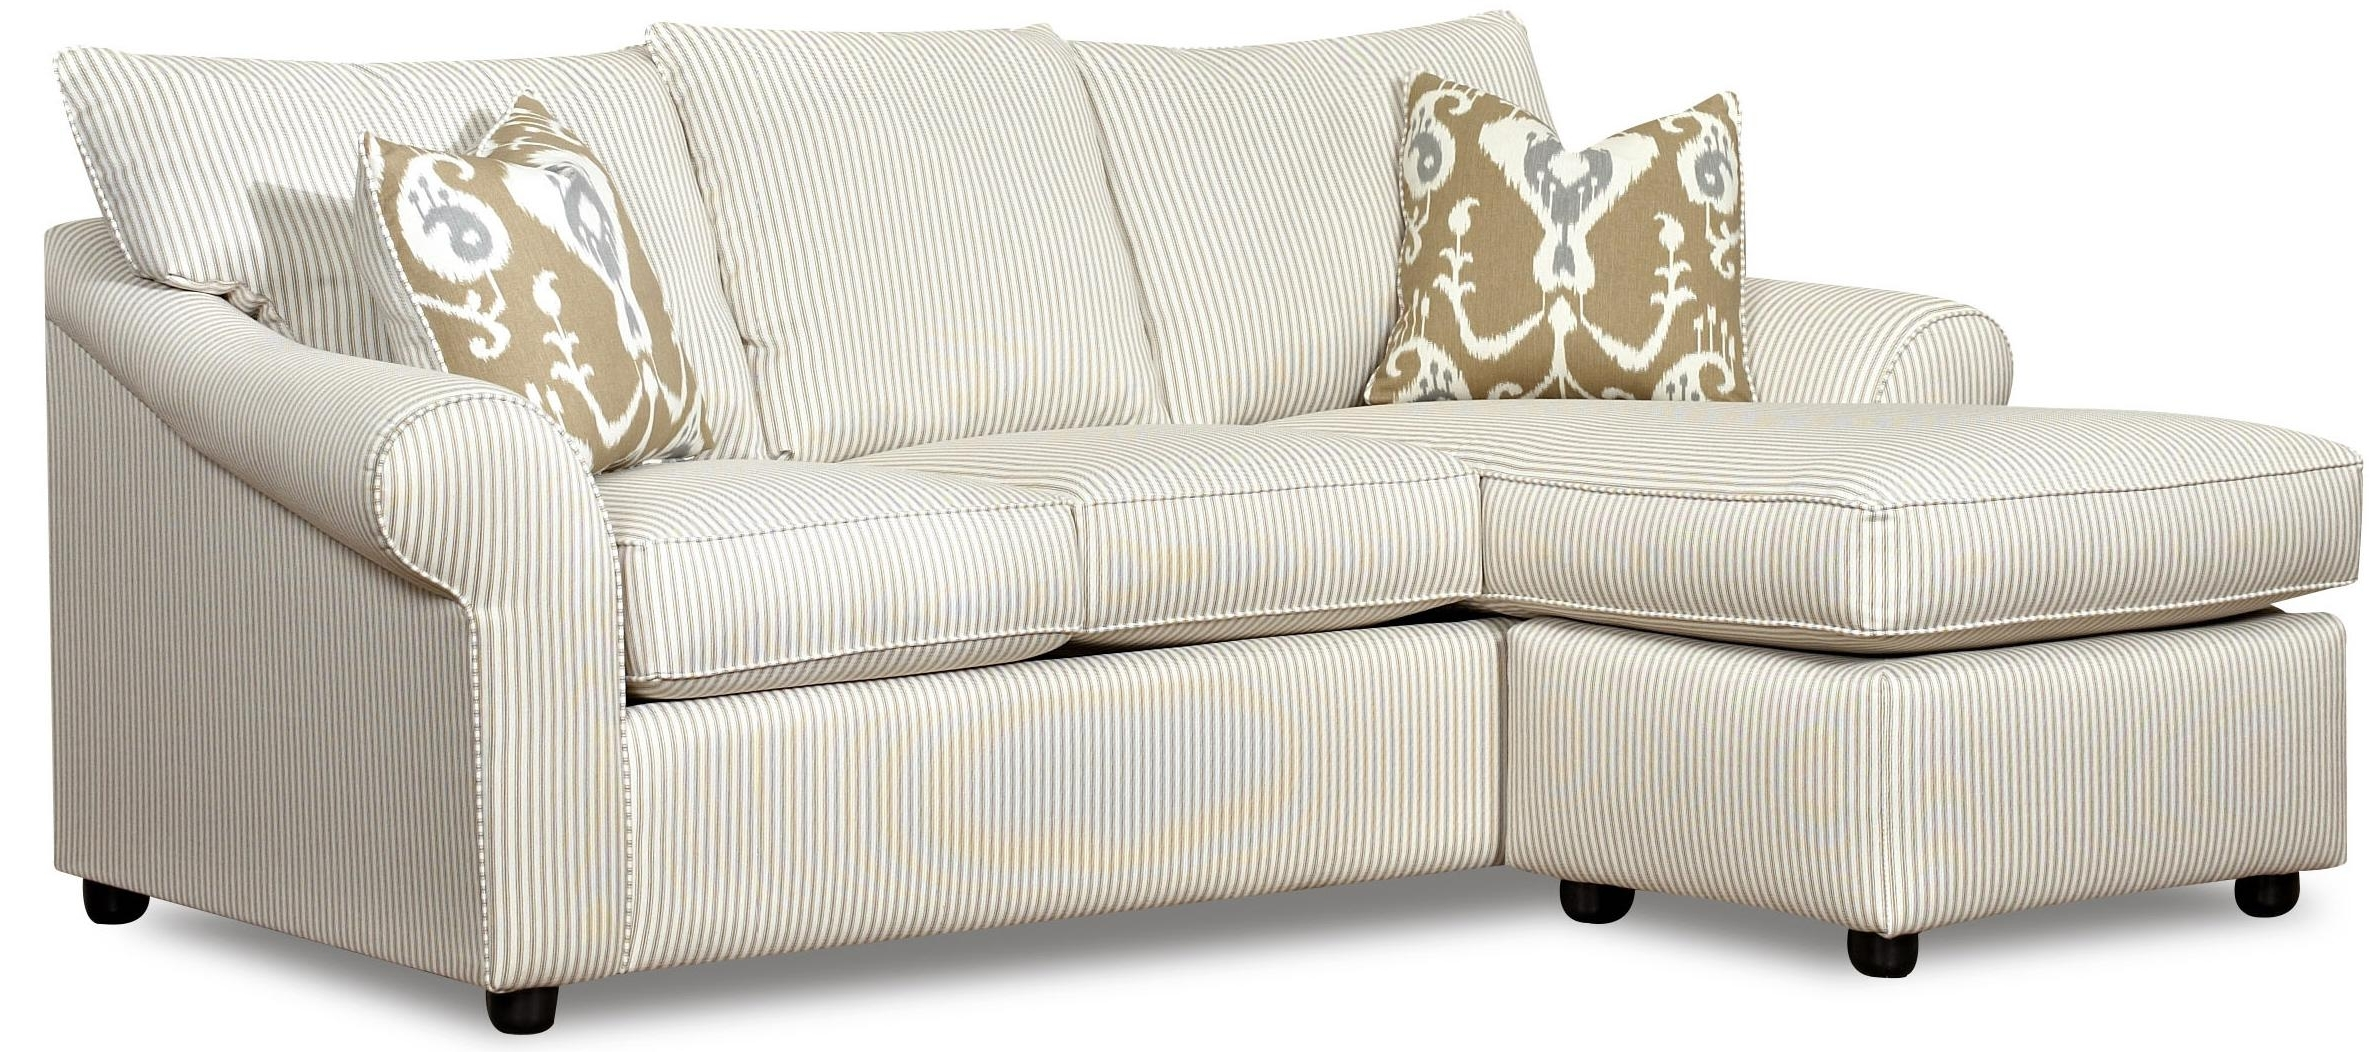 Famous Chaise Lounge Sofas Within Sofa With Reversible Chaise Loungeklaussner (View 7 of 15)